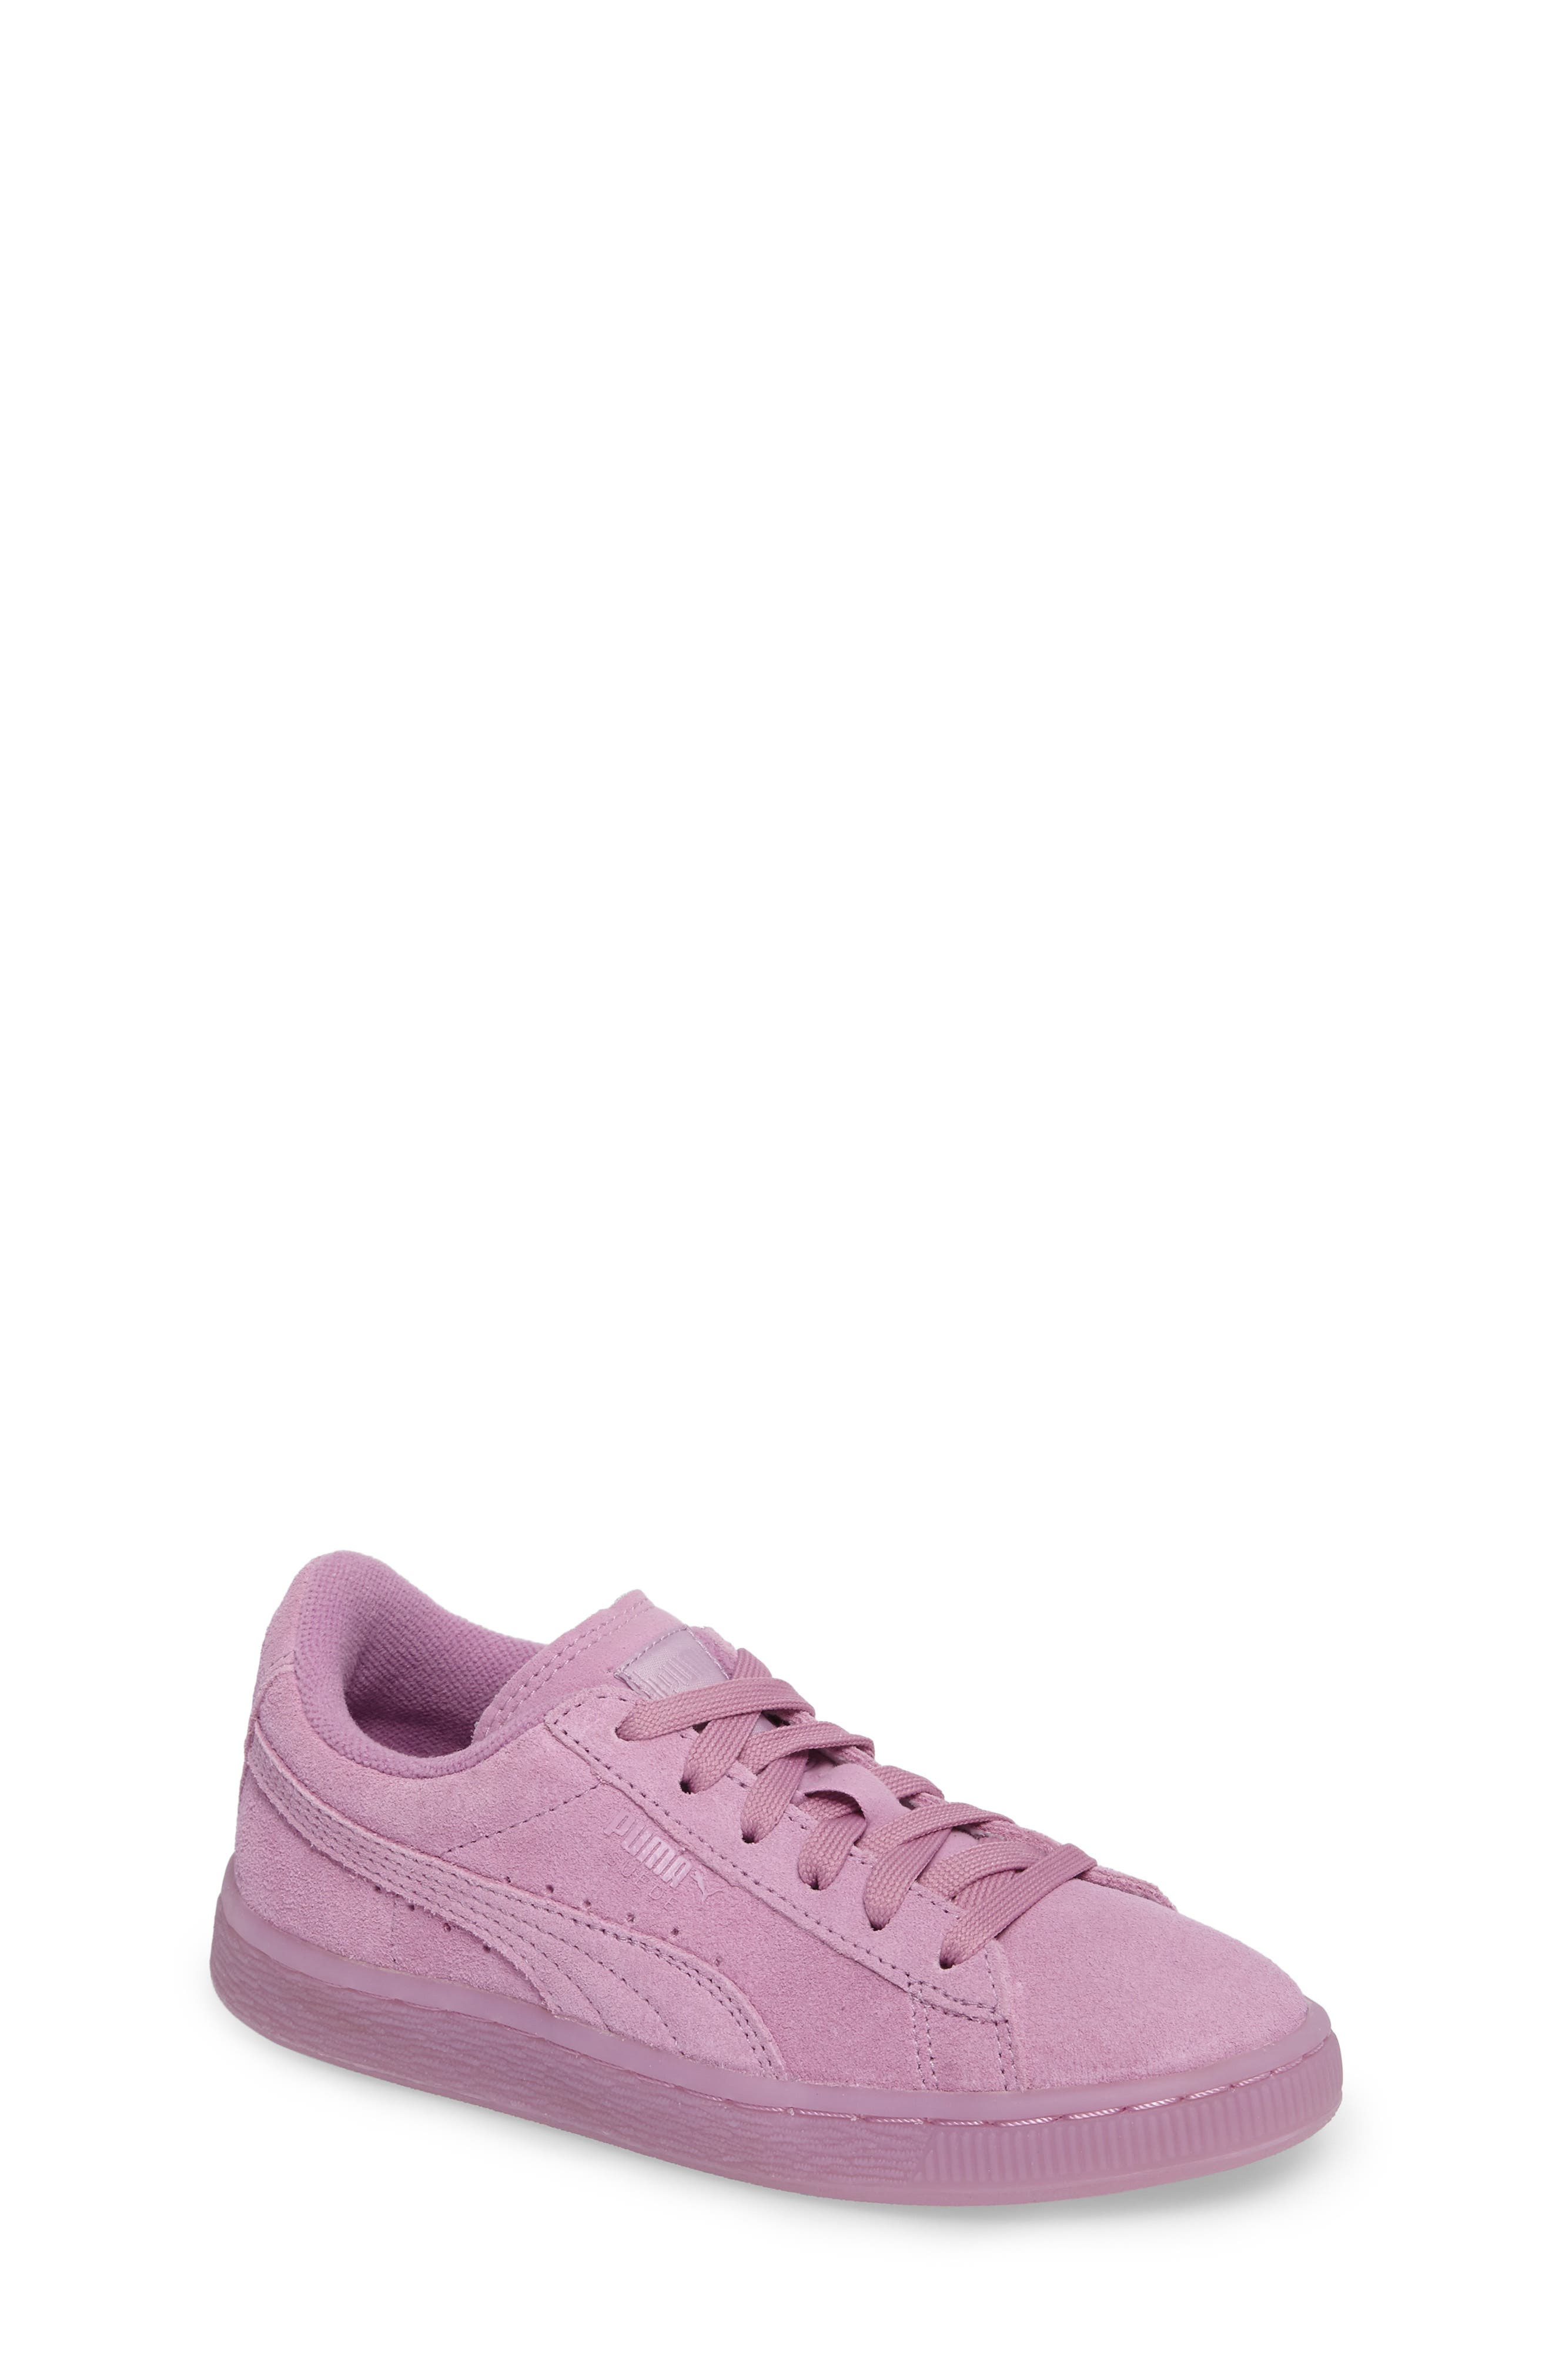 Iced Sneaker,                             Main thumbnail 1, color,                             500